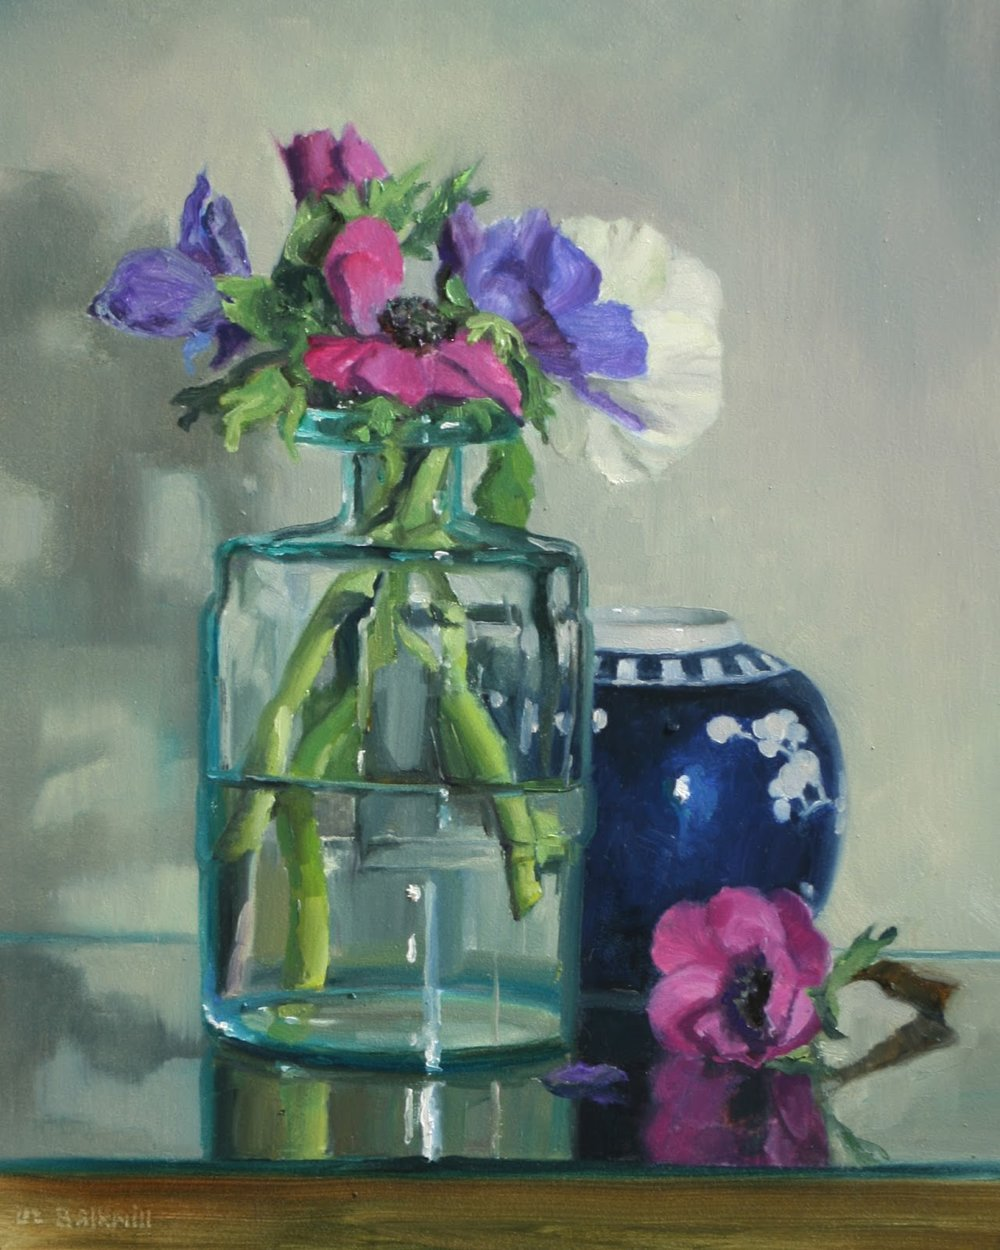 Anemones in glass jar - Pastel